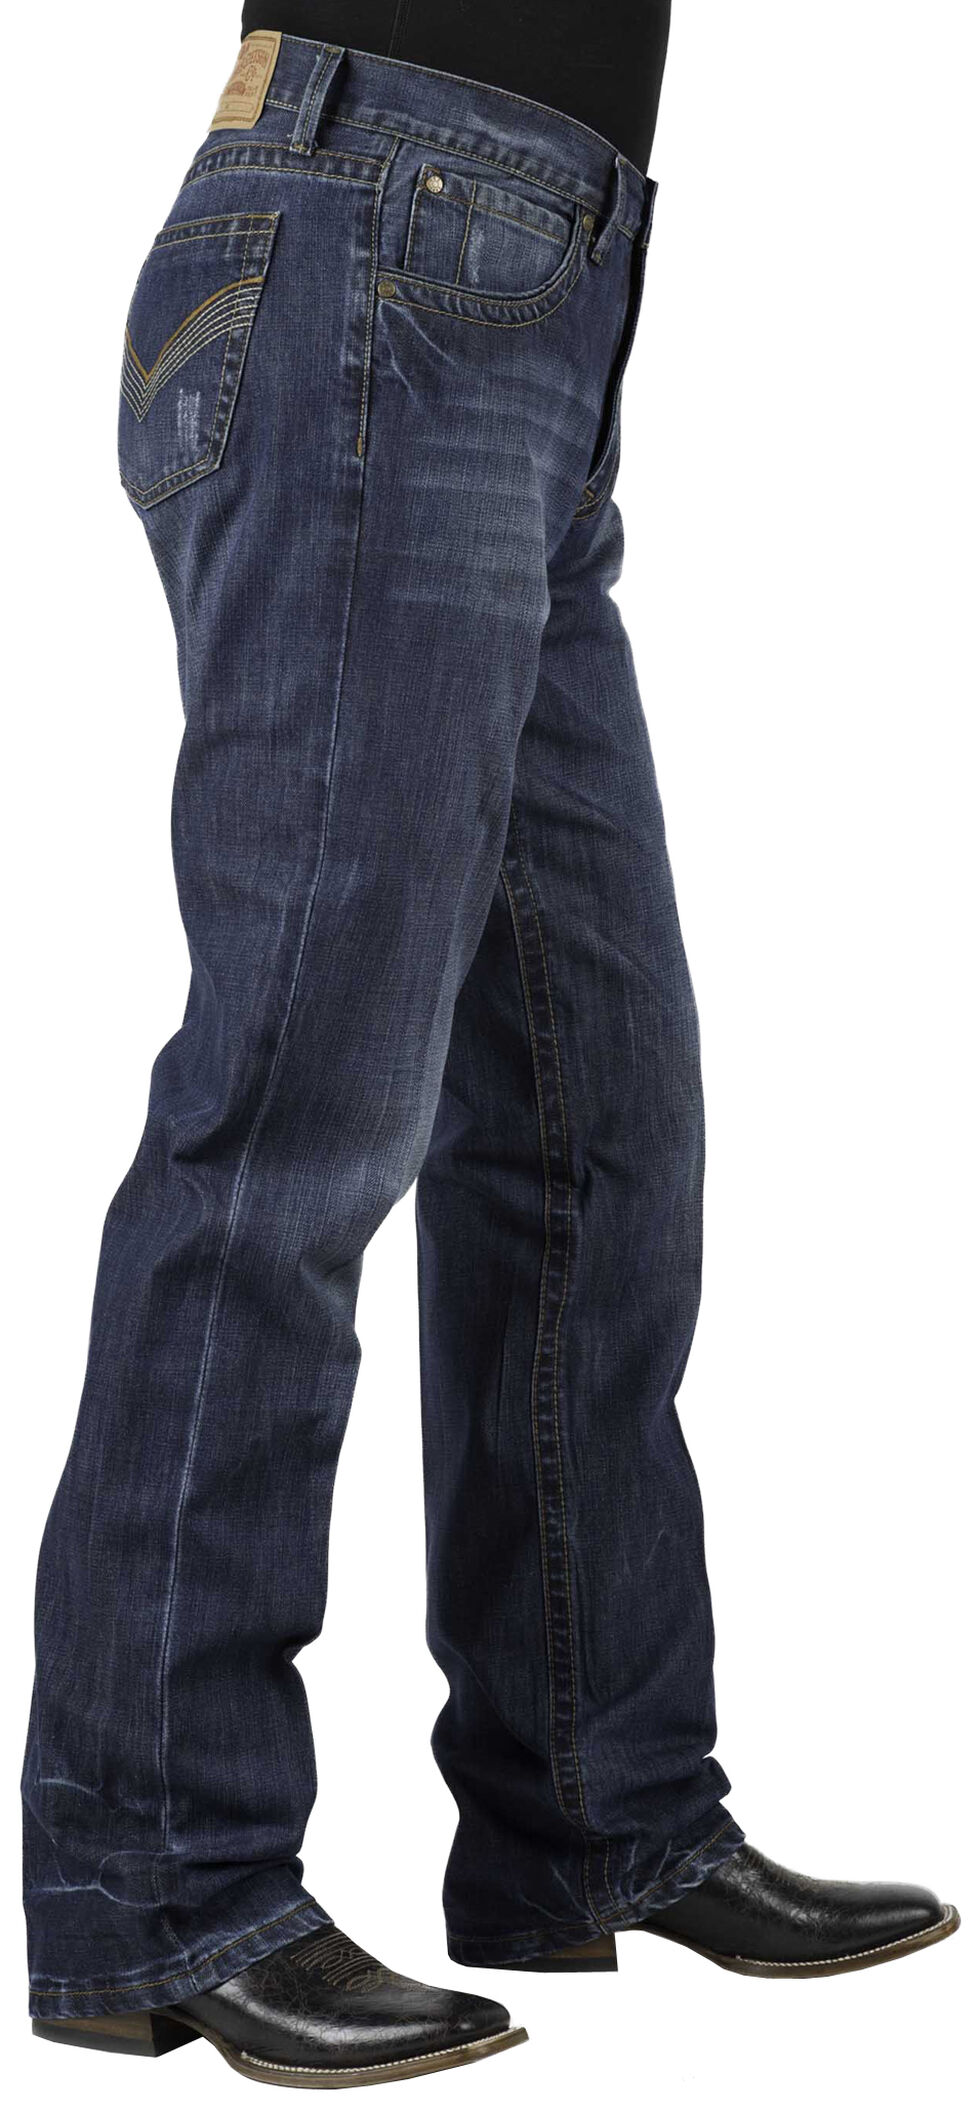 Stetson Modern Fit 1312 Jeans - Low Rise Bootcut, Denim, hi-res